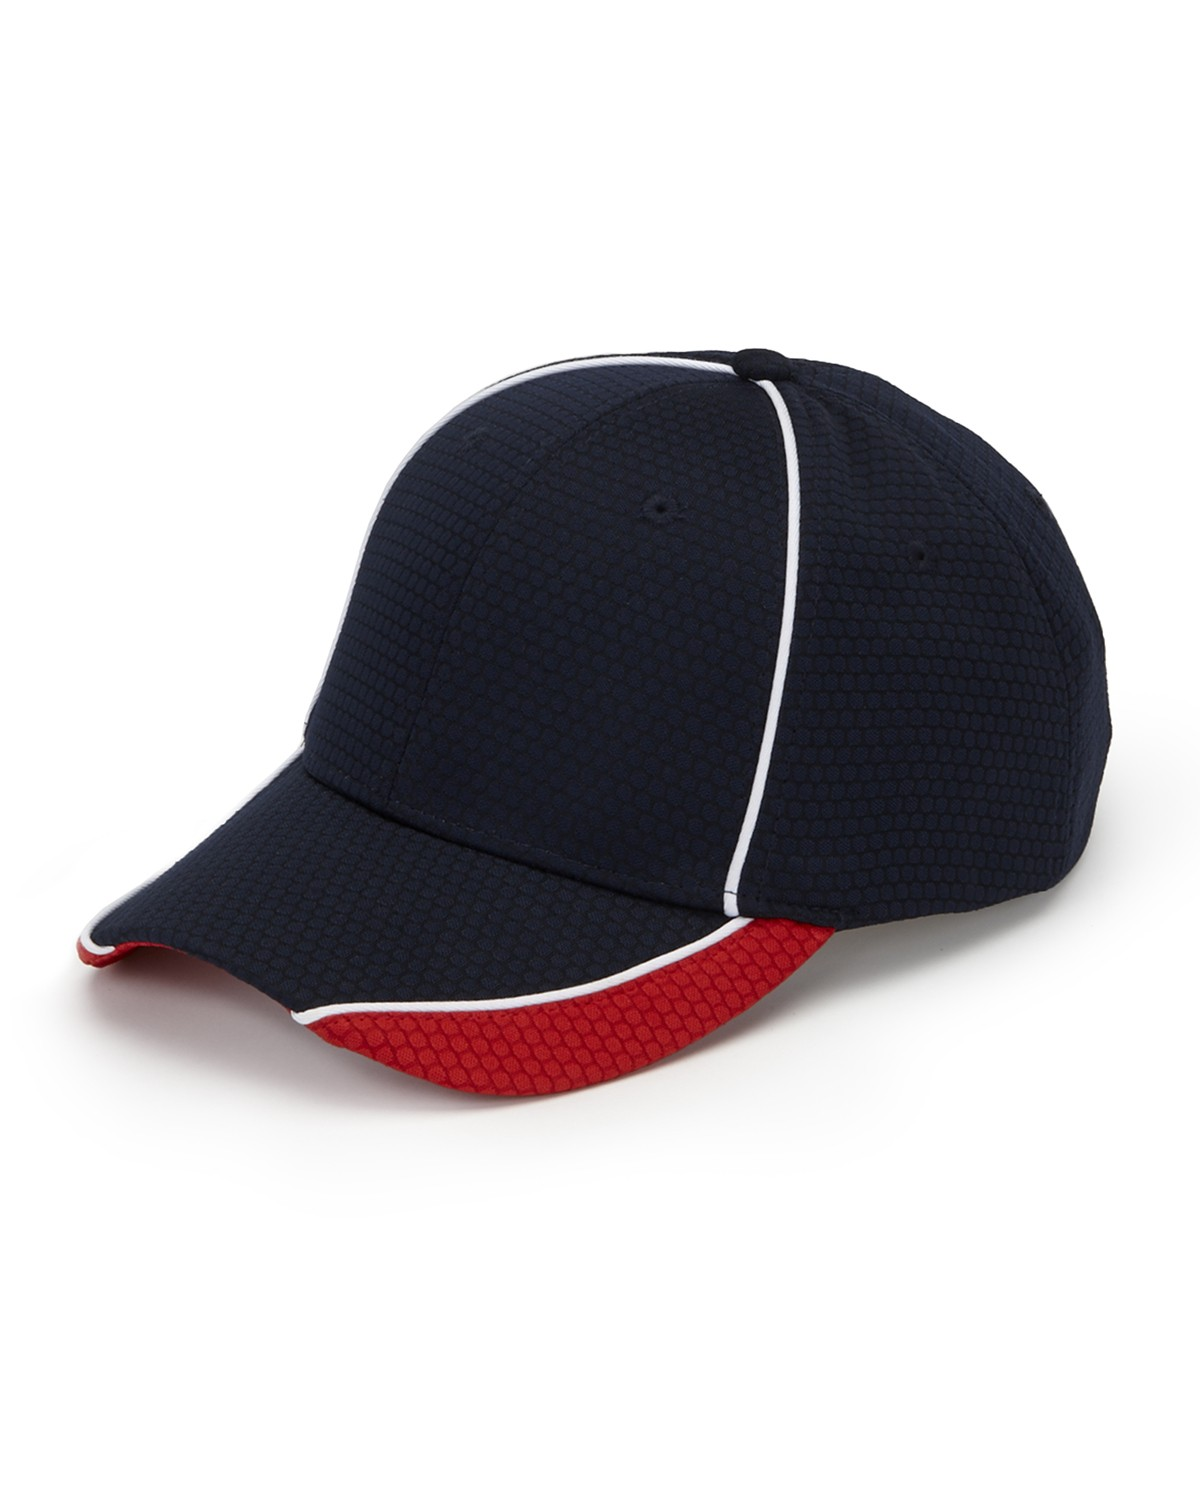 DP102 Adams NAVY/RED/WHITE